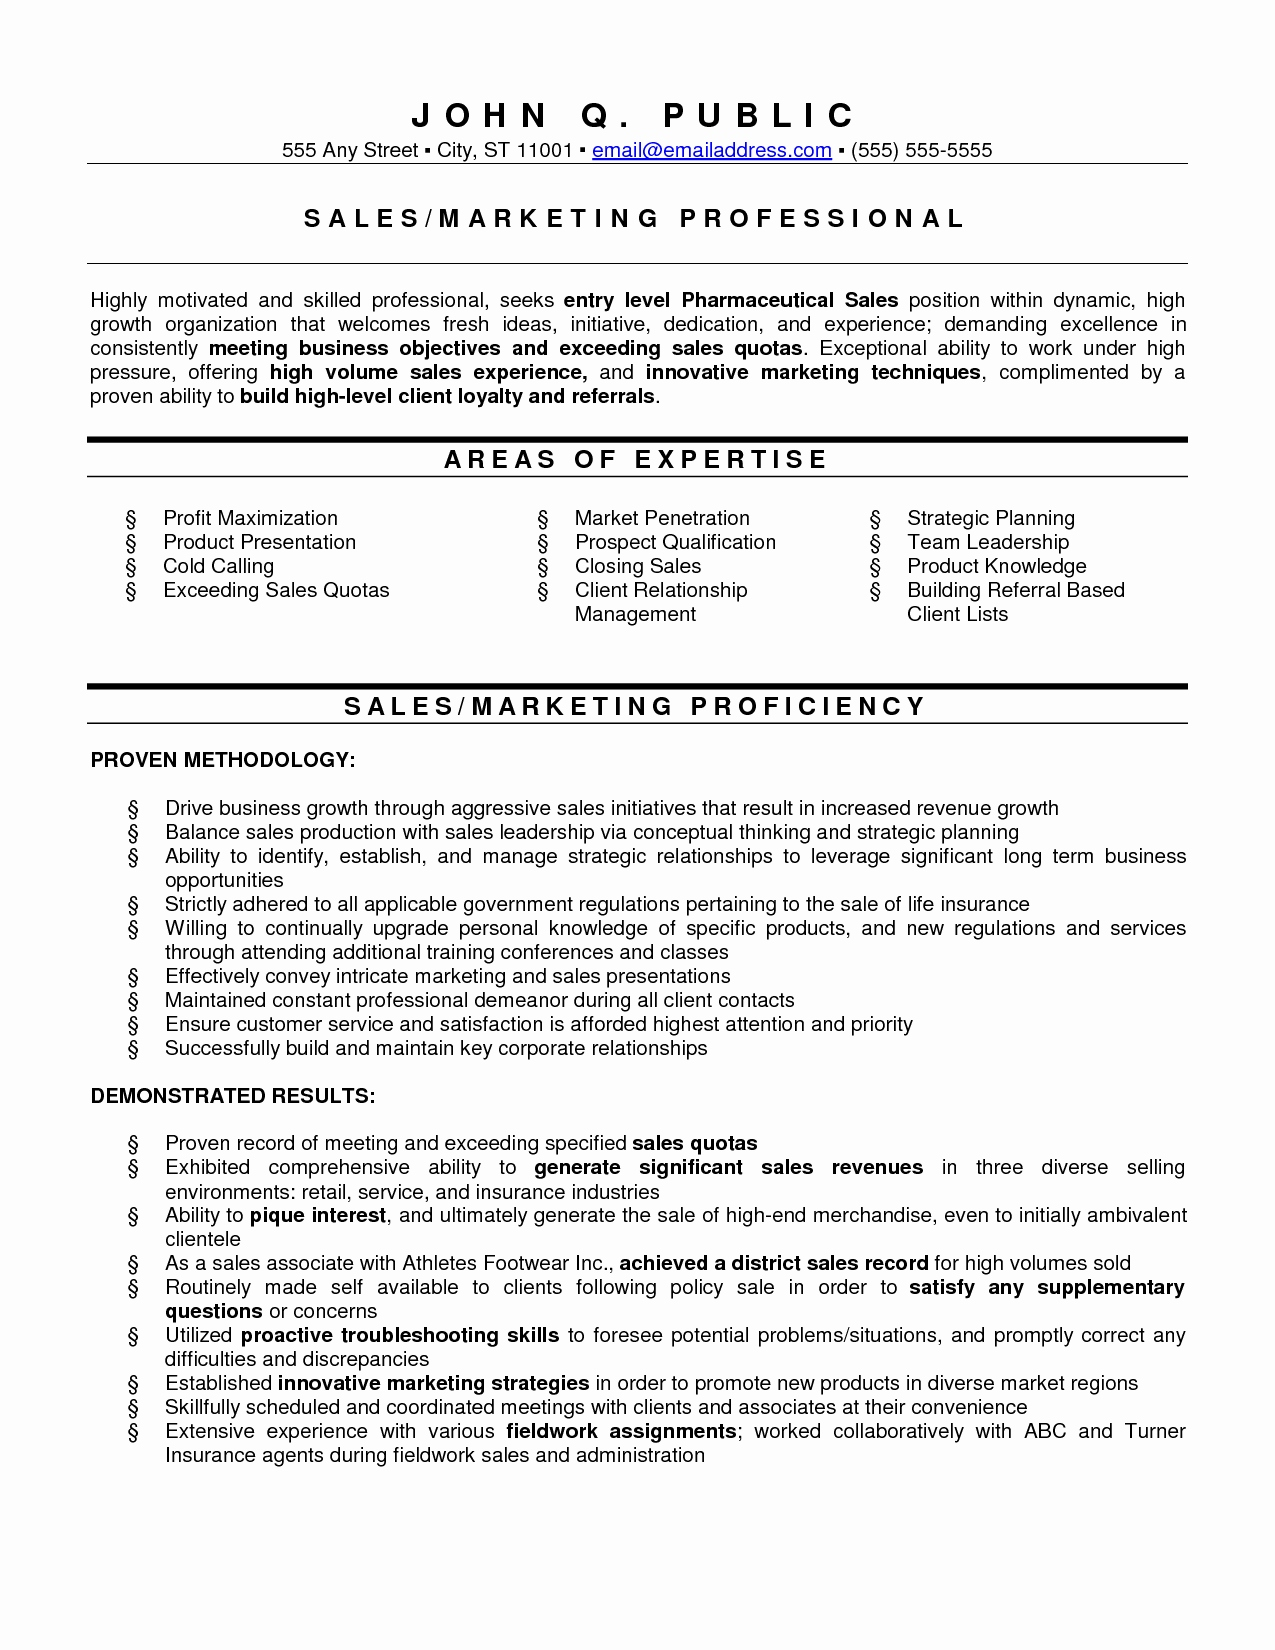 career change sample resume Dorit.mercatodos.co